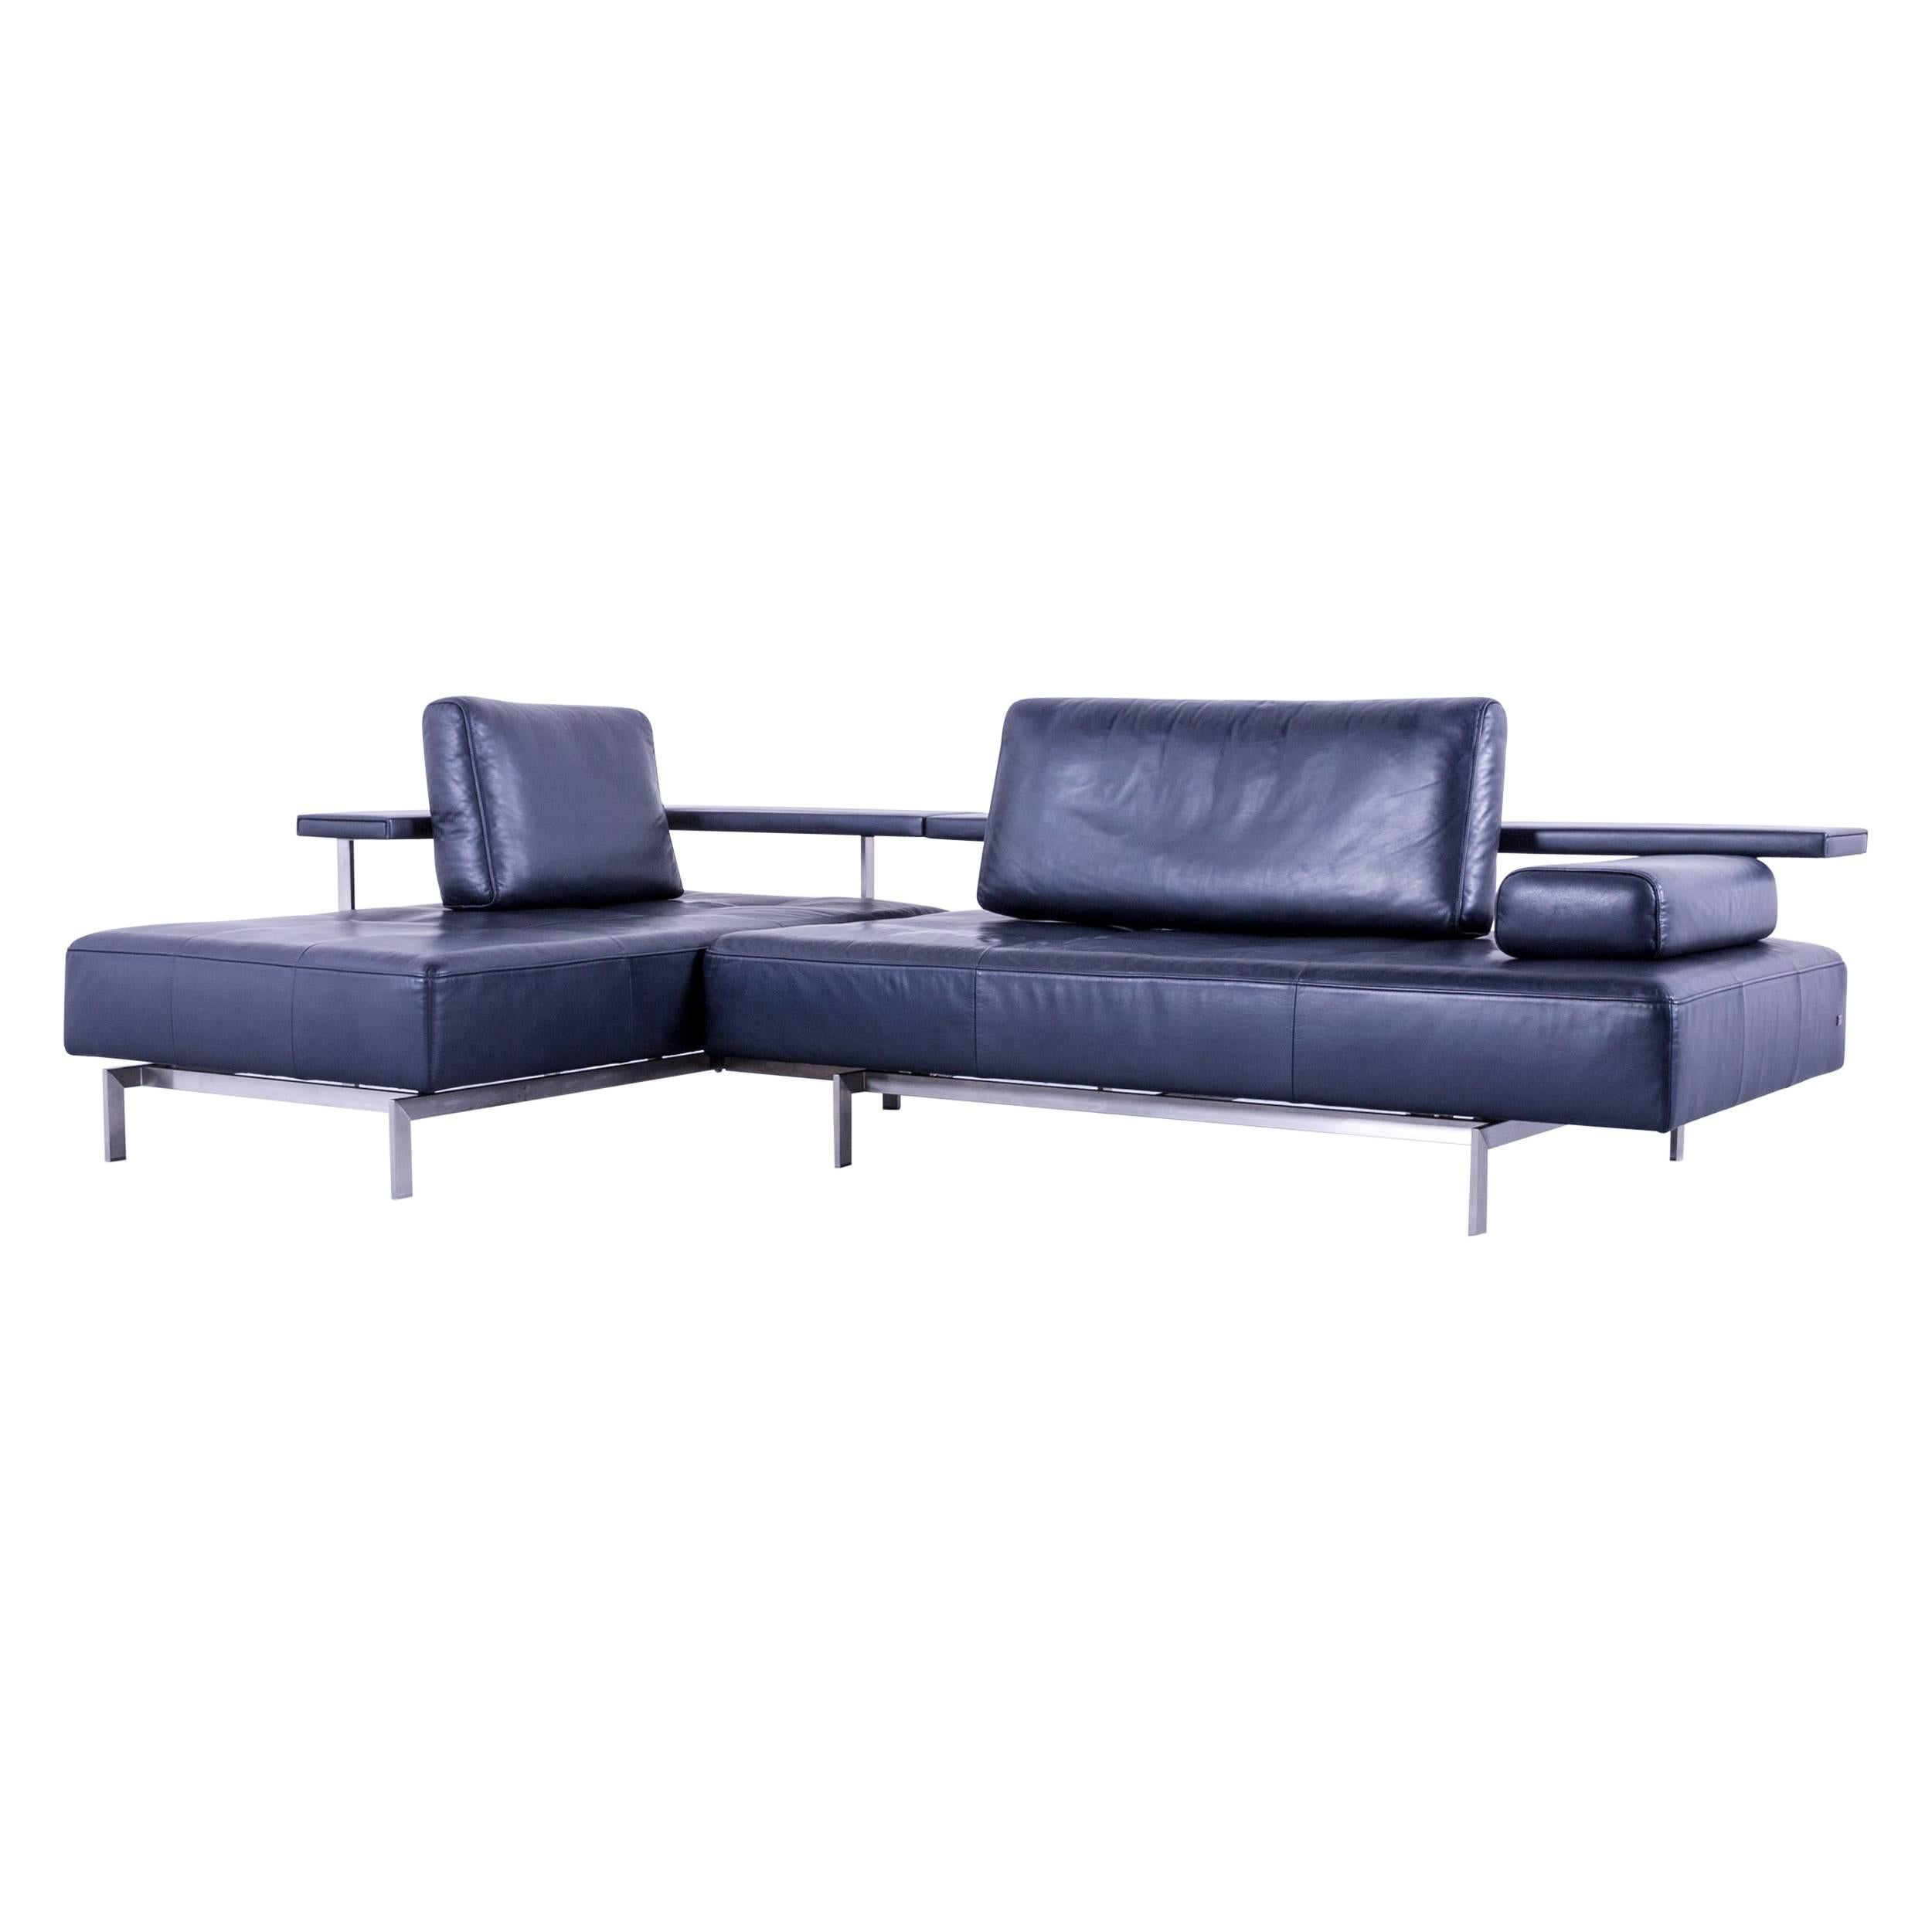 Rolf Benz Sofa 322 Rolf Benz Sofa 322 With Rolf Benz Sofa